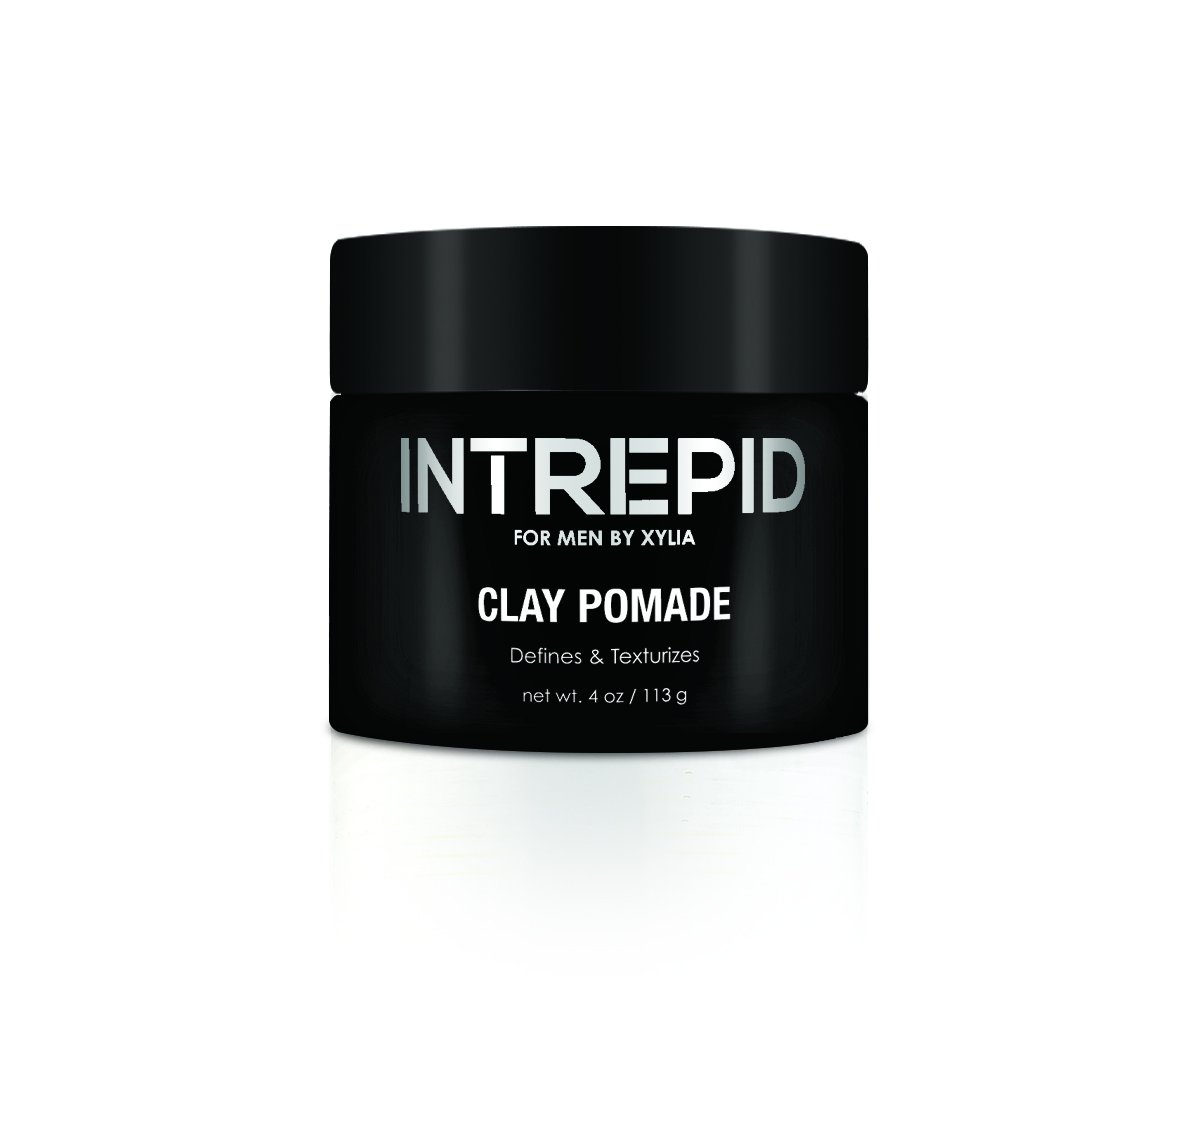 New! Intrepid for Men Clay Pomade 4 oz.~ Matte Medium Hold Add Volume and style with out the slick Shiny look of Hair Gel ~ Texturizes and styles with Natural looking Results